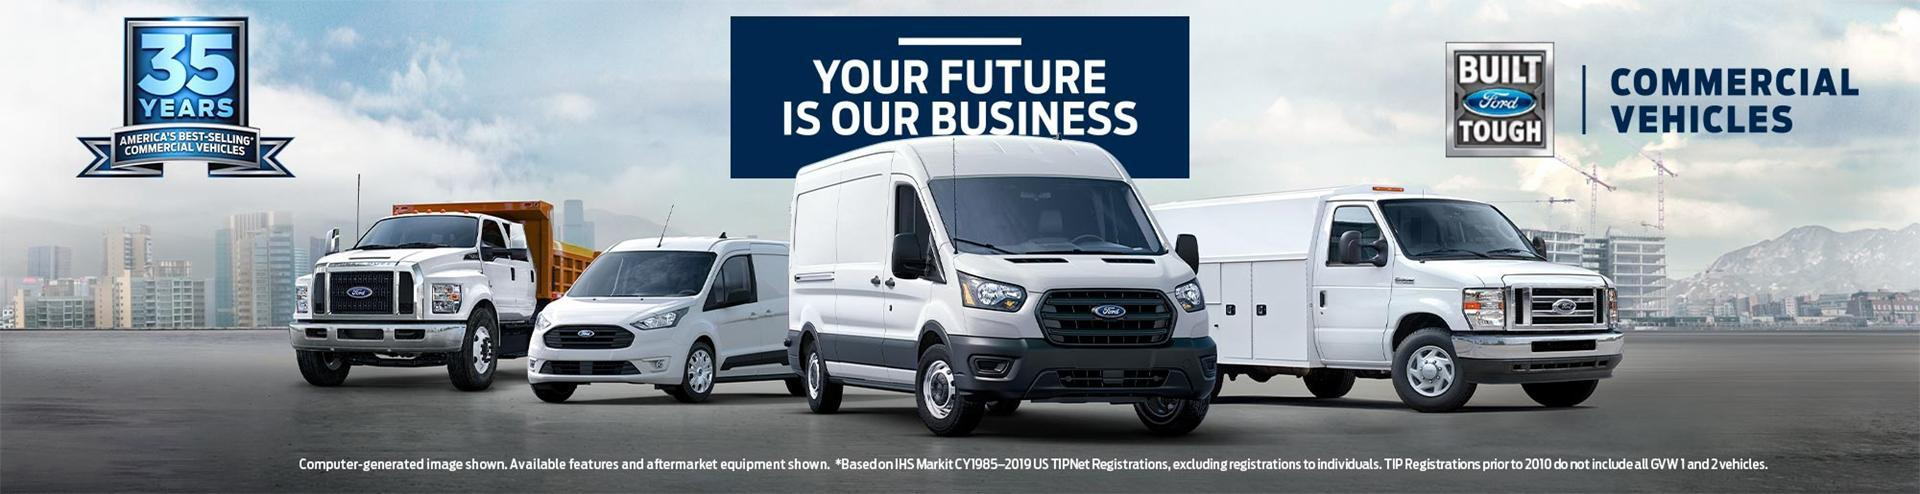 Nationwide Deliver | South Bay Ford Commercial